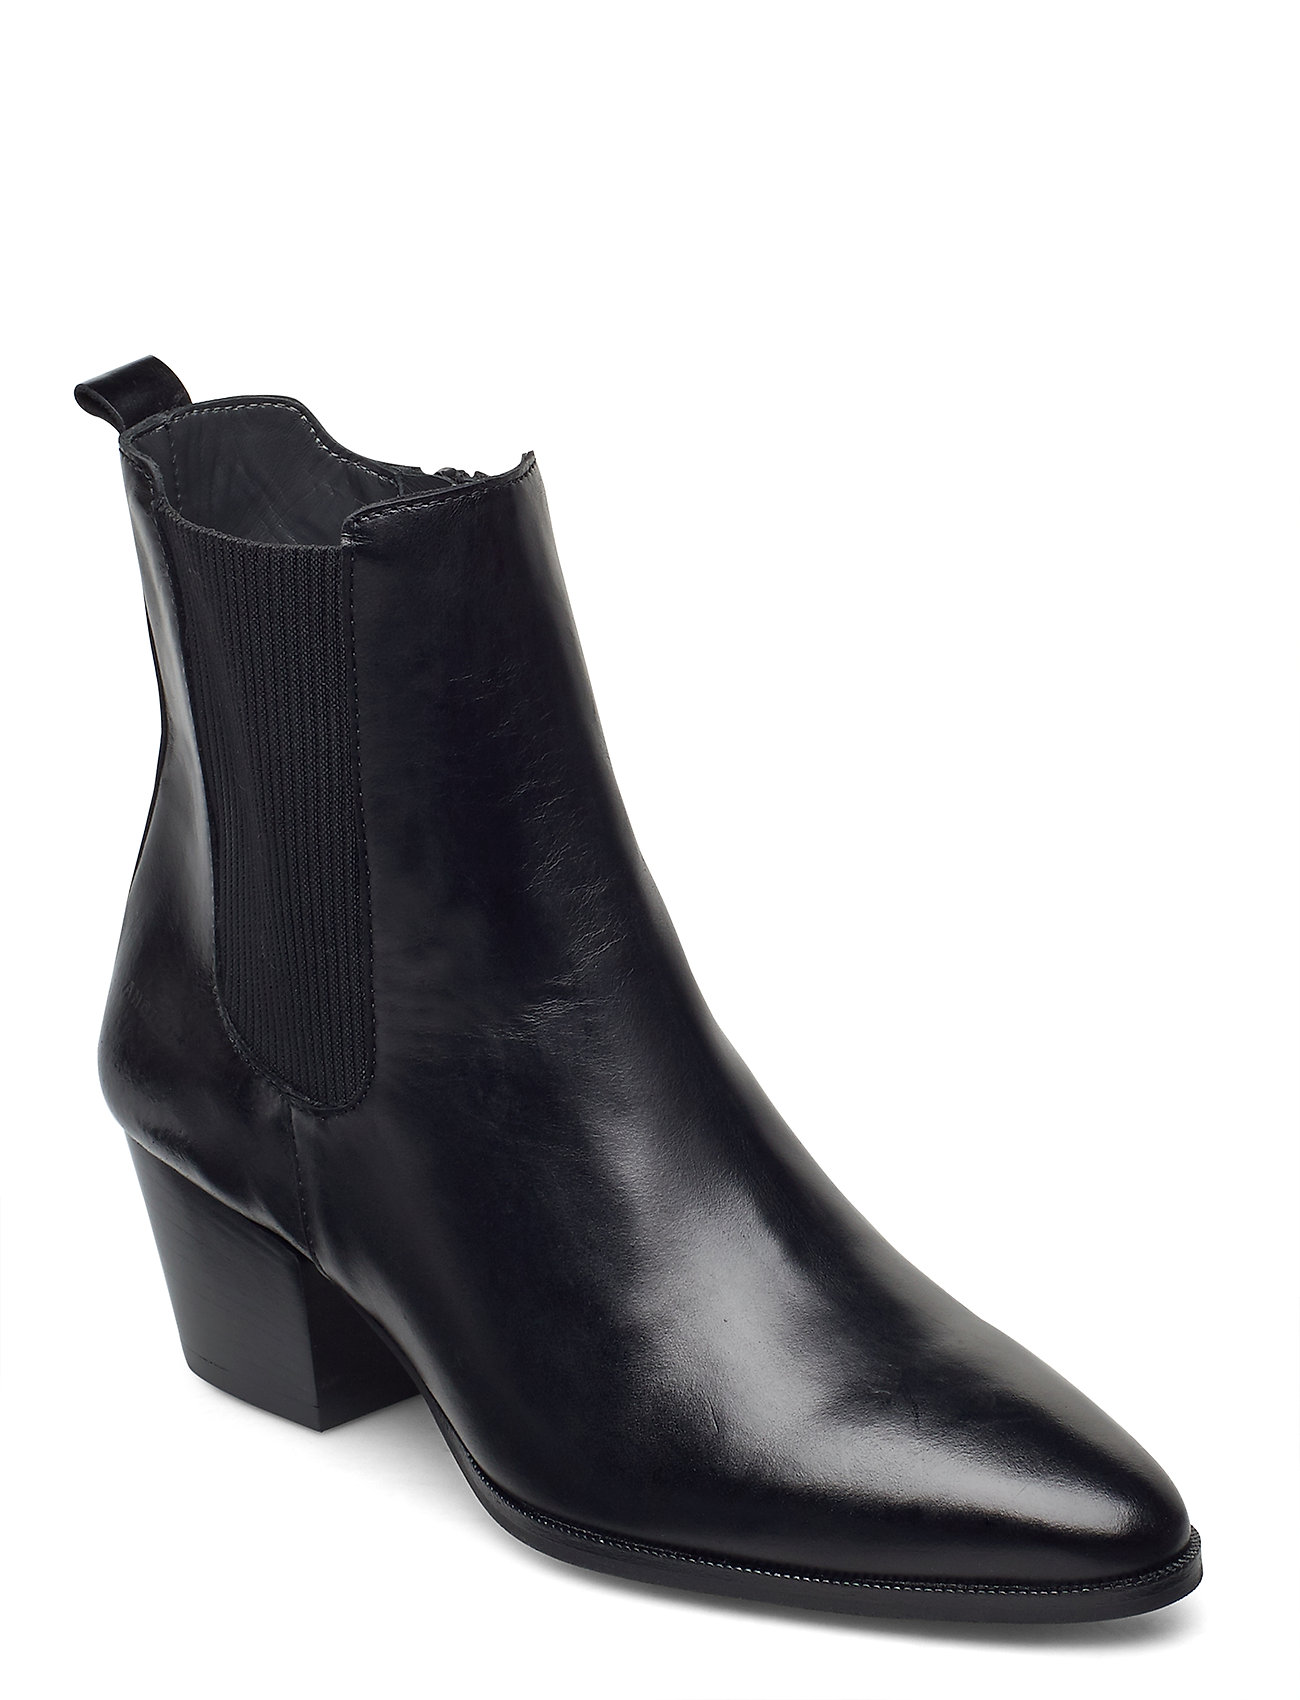 Image of Booties - Block Heel - With Elas Shoes Boots Ankle Boots Ankle Boot - Heel Sort ANGULUS (3440208137)